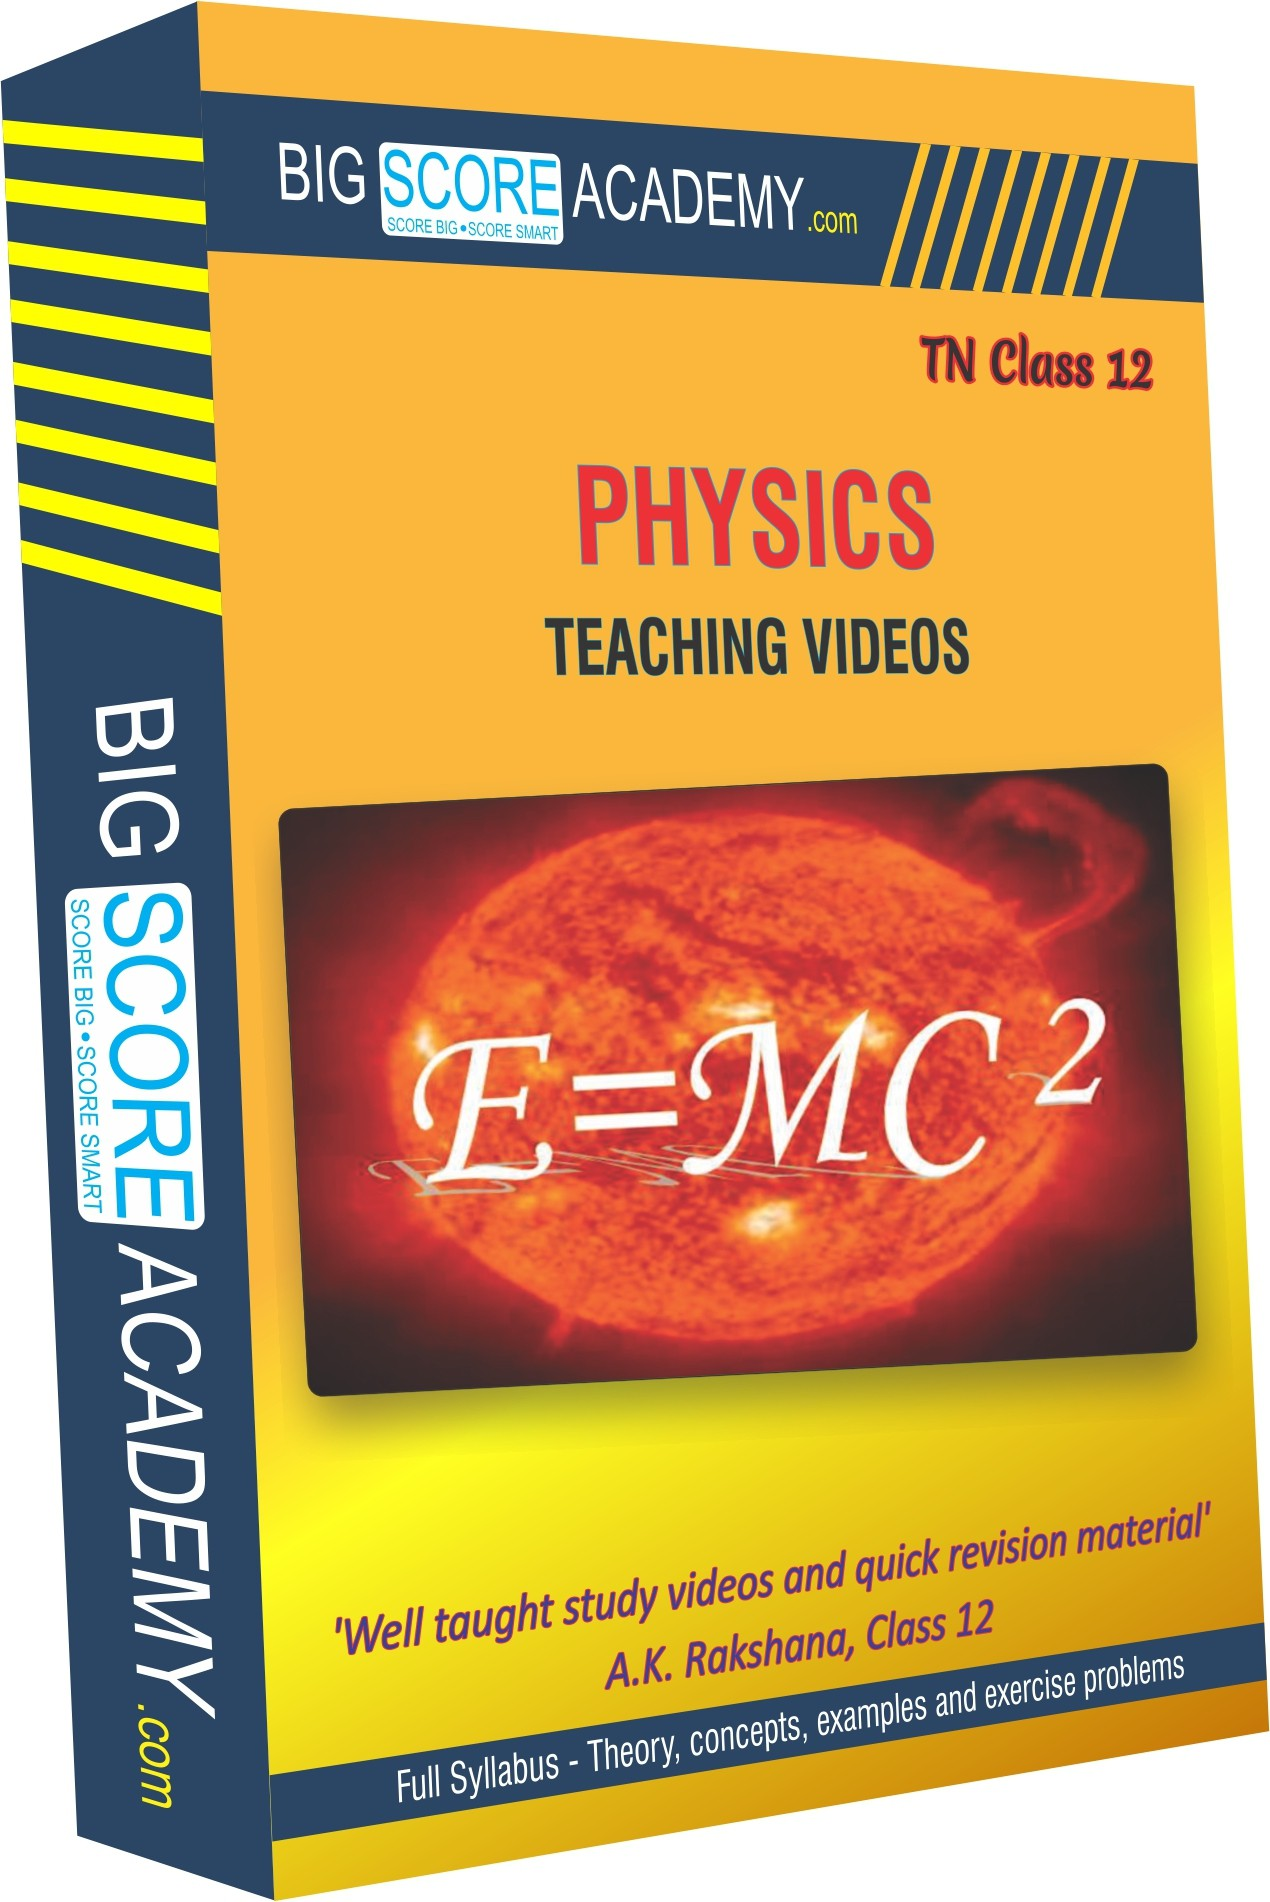 BigScoreAcademy.com Tamil Nadu Samacheer Kalvi Class 12 Physics Full Syllabus Teaching Video(DVD)